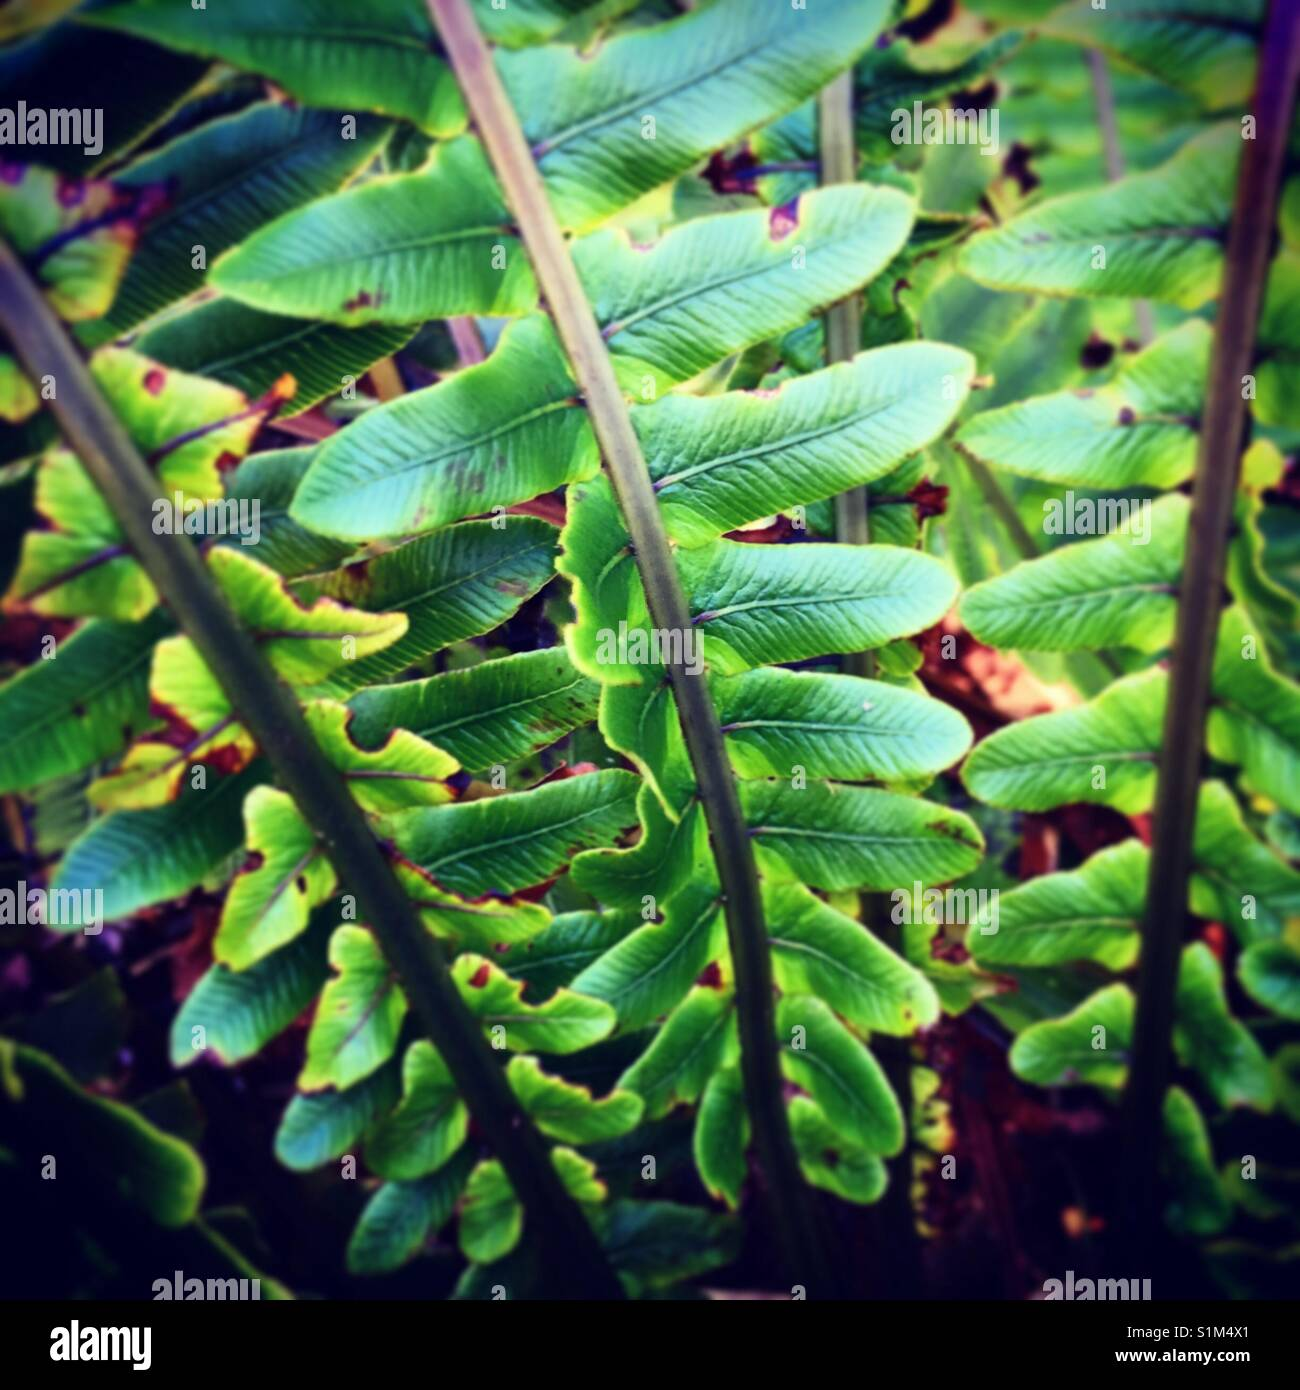 Fern frond - Stock Image